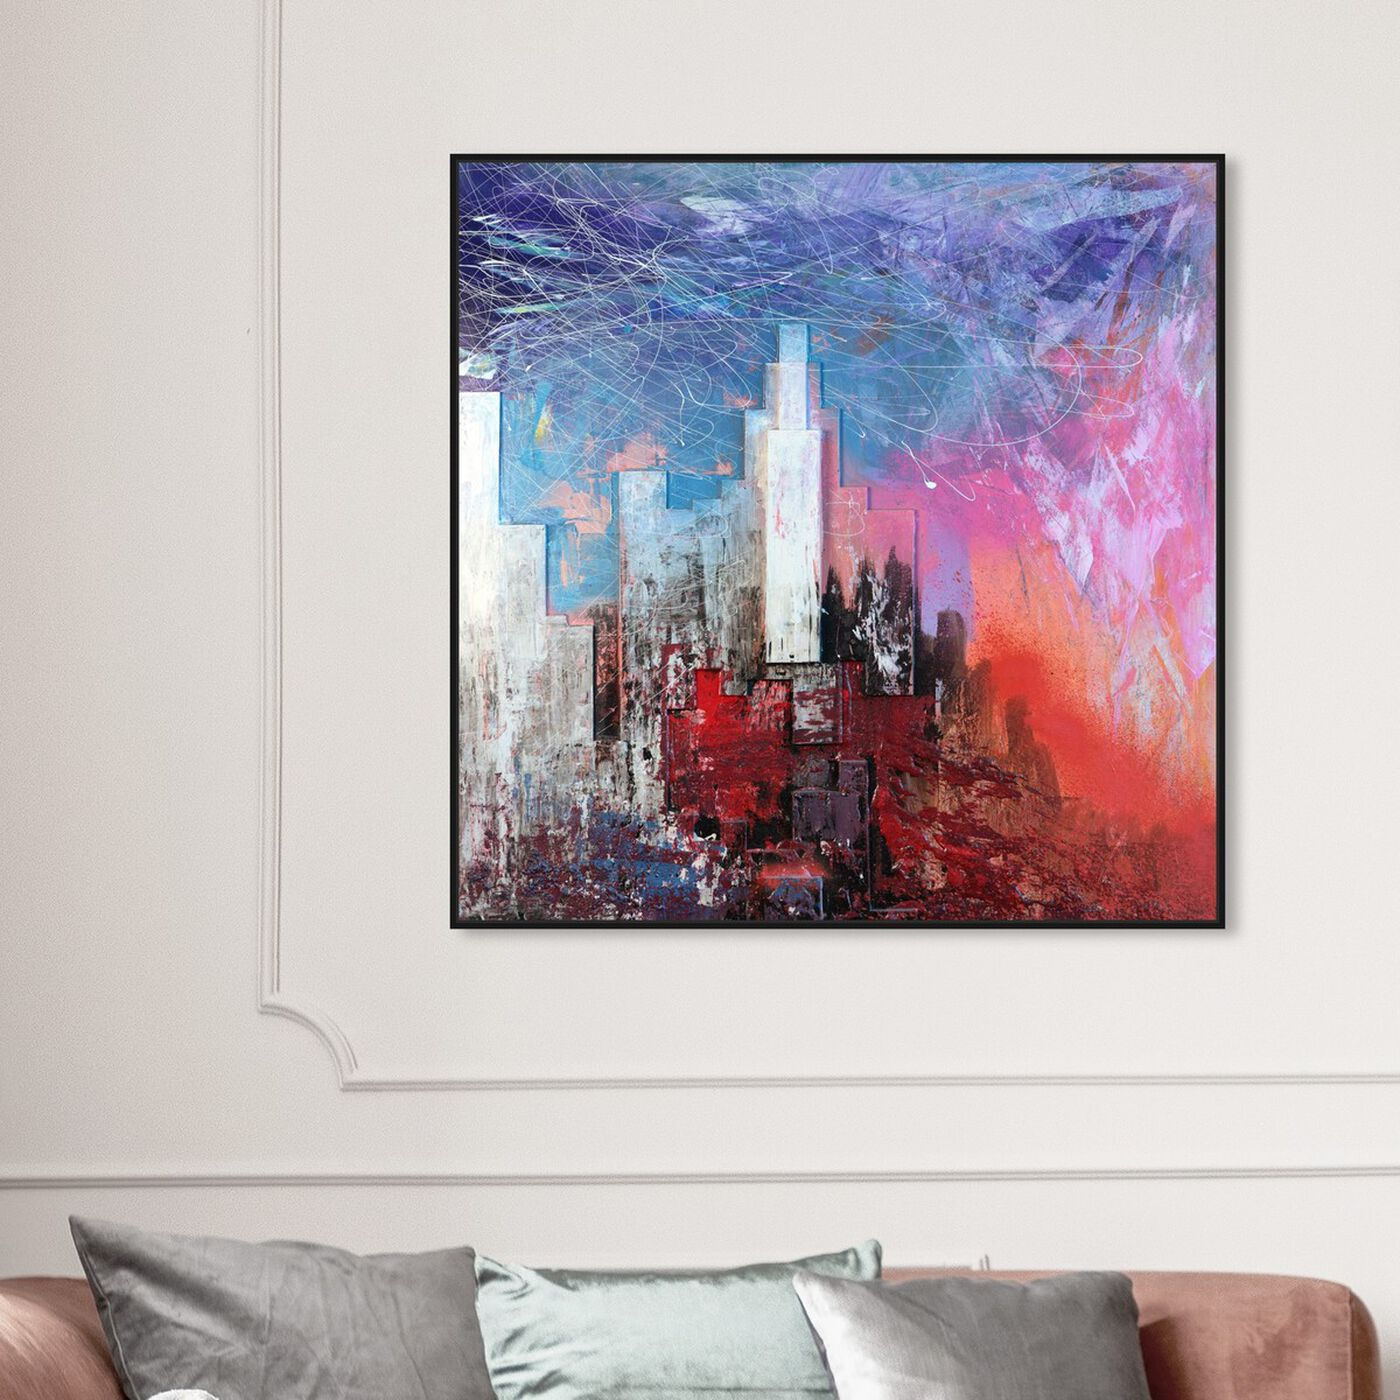 Hanging view of Sai - Urban Vissage 1IC1322 featuring cities and skylines and urban and cityscapes art.